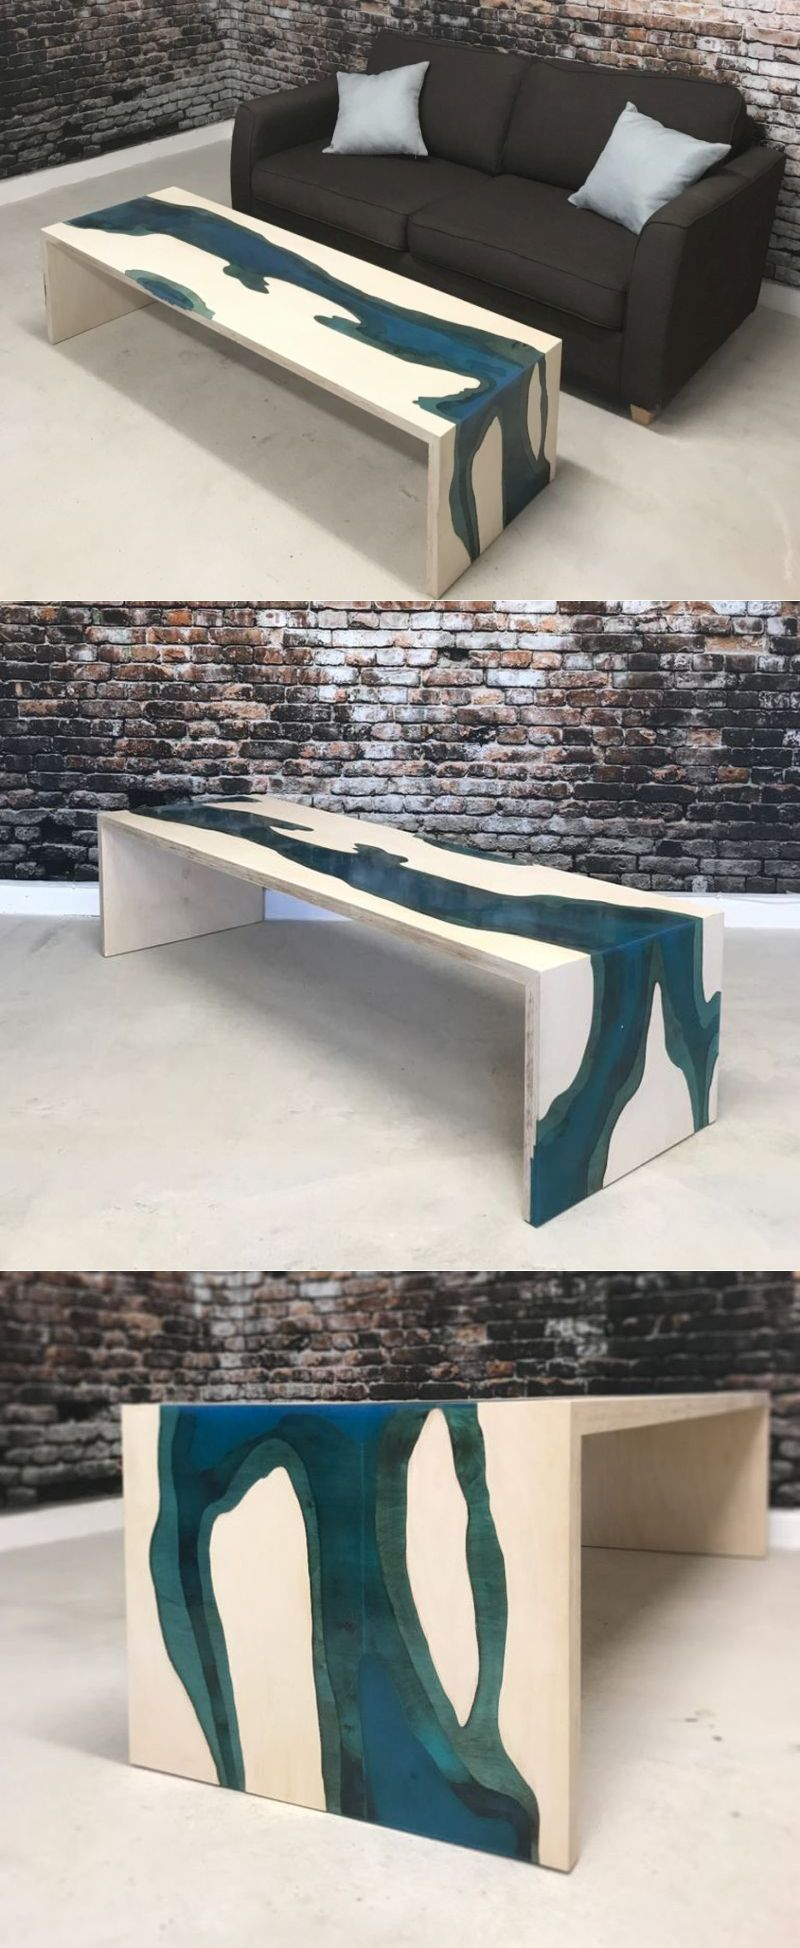 Esszimmer ideen holztisch epoxy waterfall coffee table by revive joinery  holzarbeiten